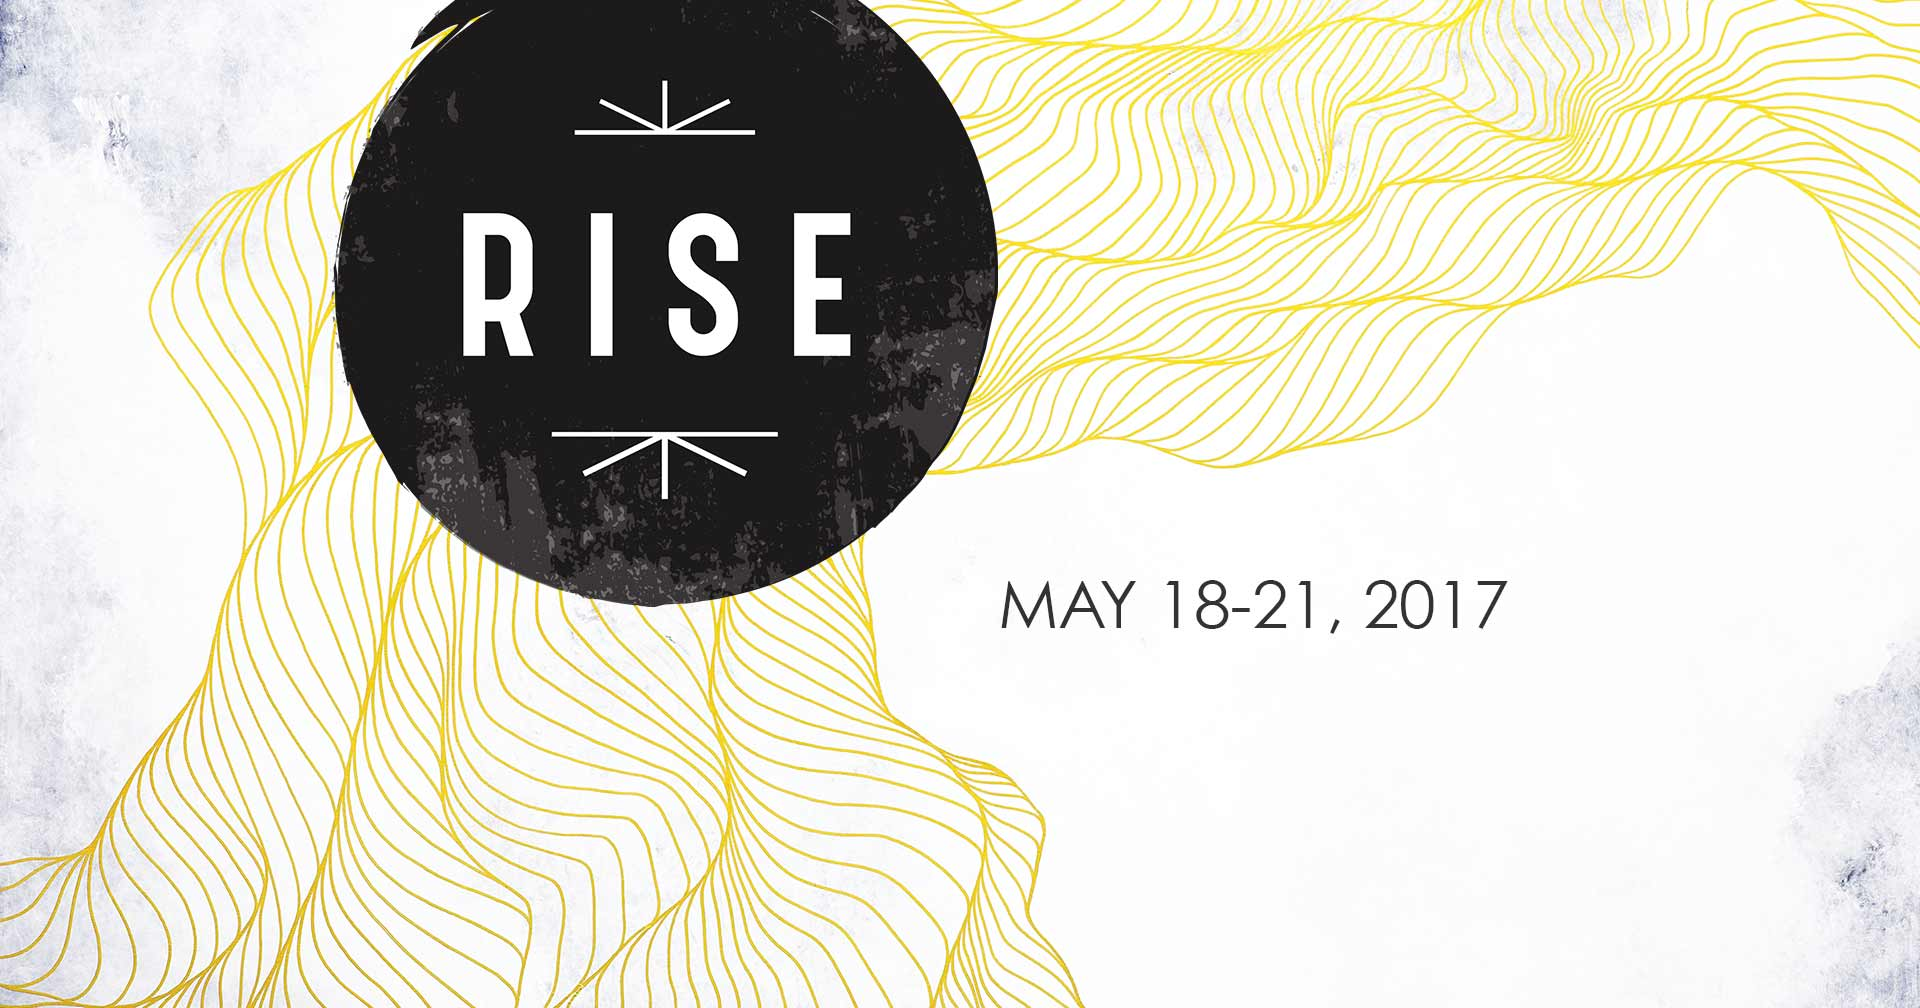 Women's Conference 2017 >|RISE|<